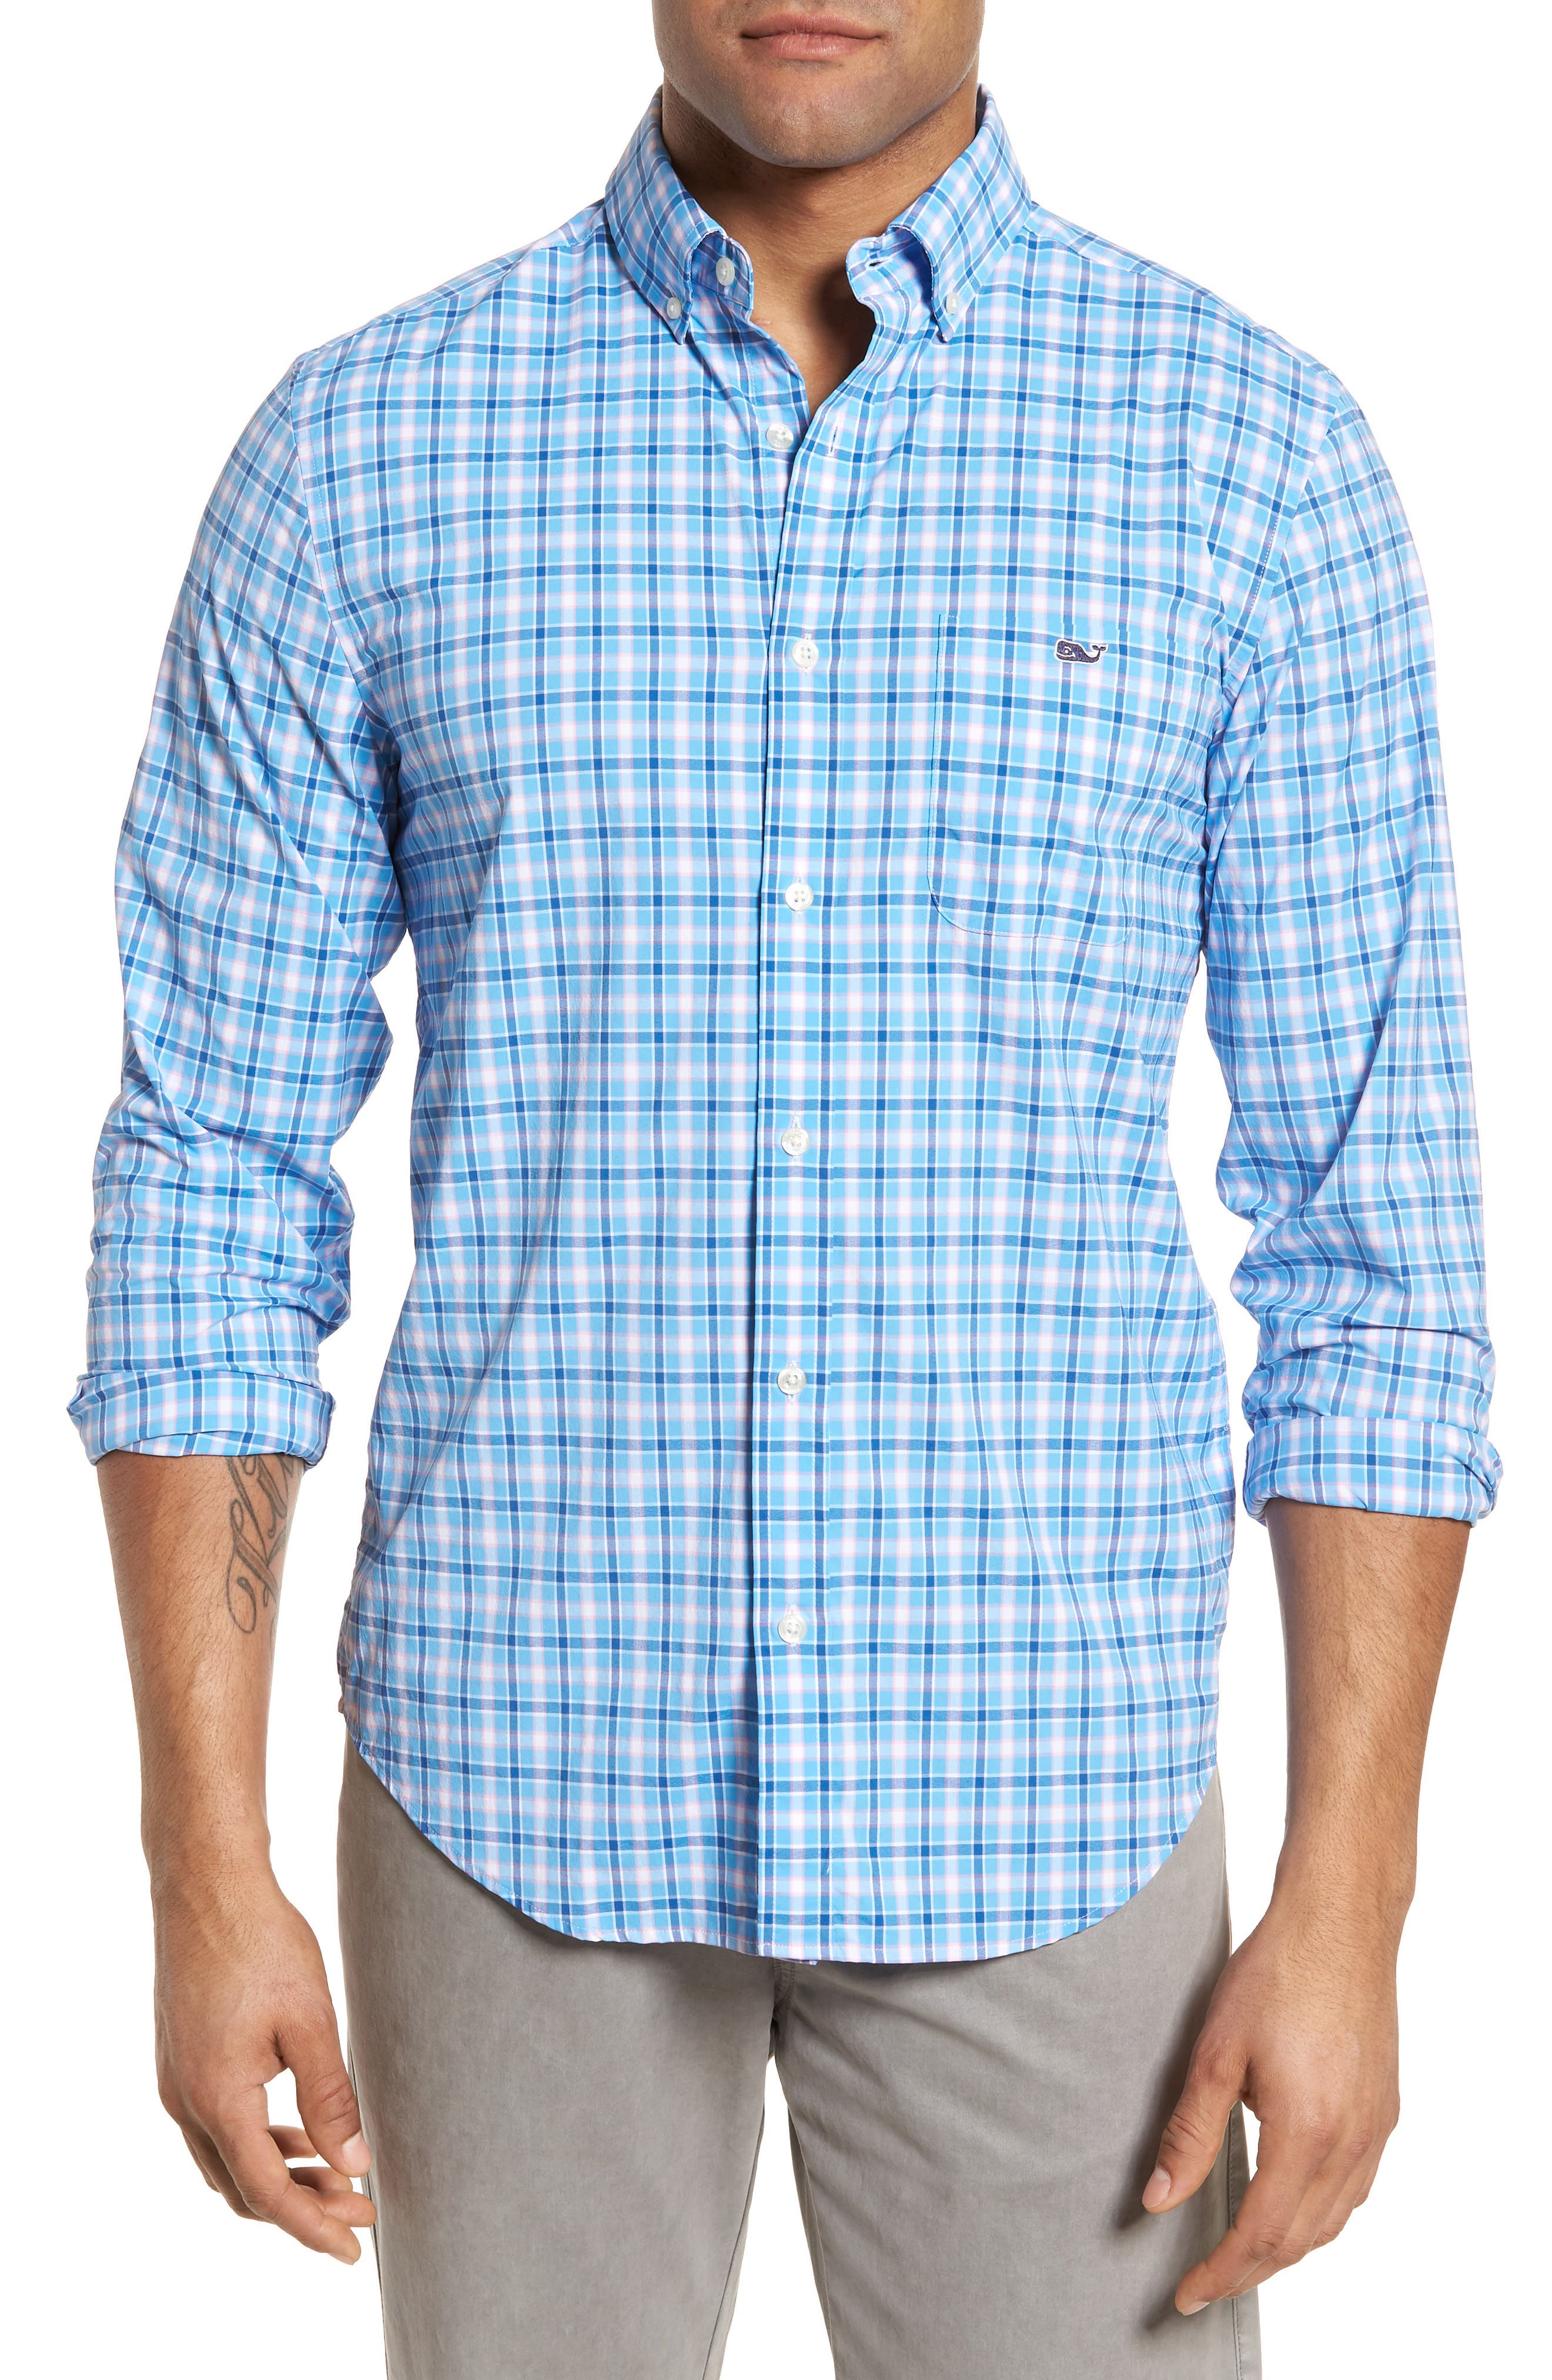 Lyford Cay Classic Fit Stretch Check Sport Shirt,                         Main,                         color, Ocean Breeze